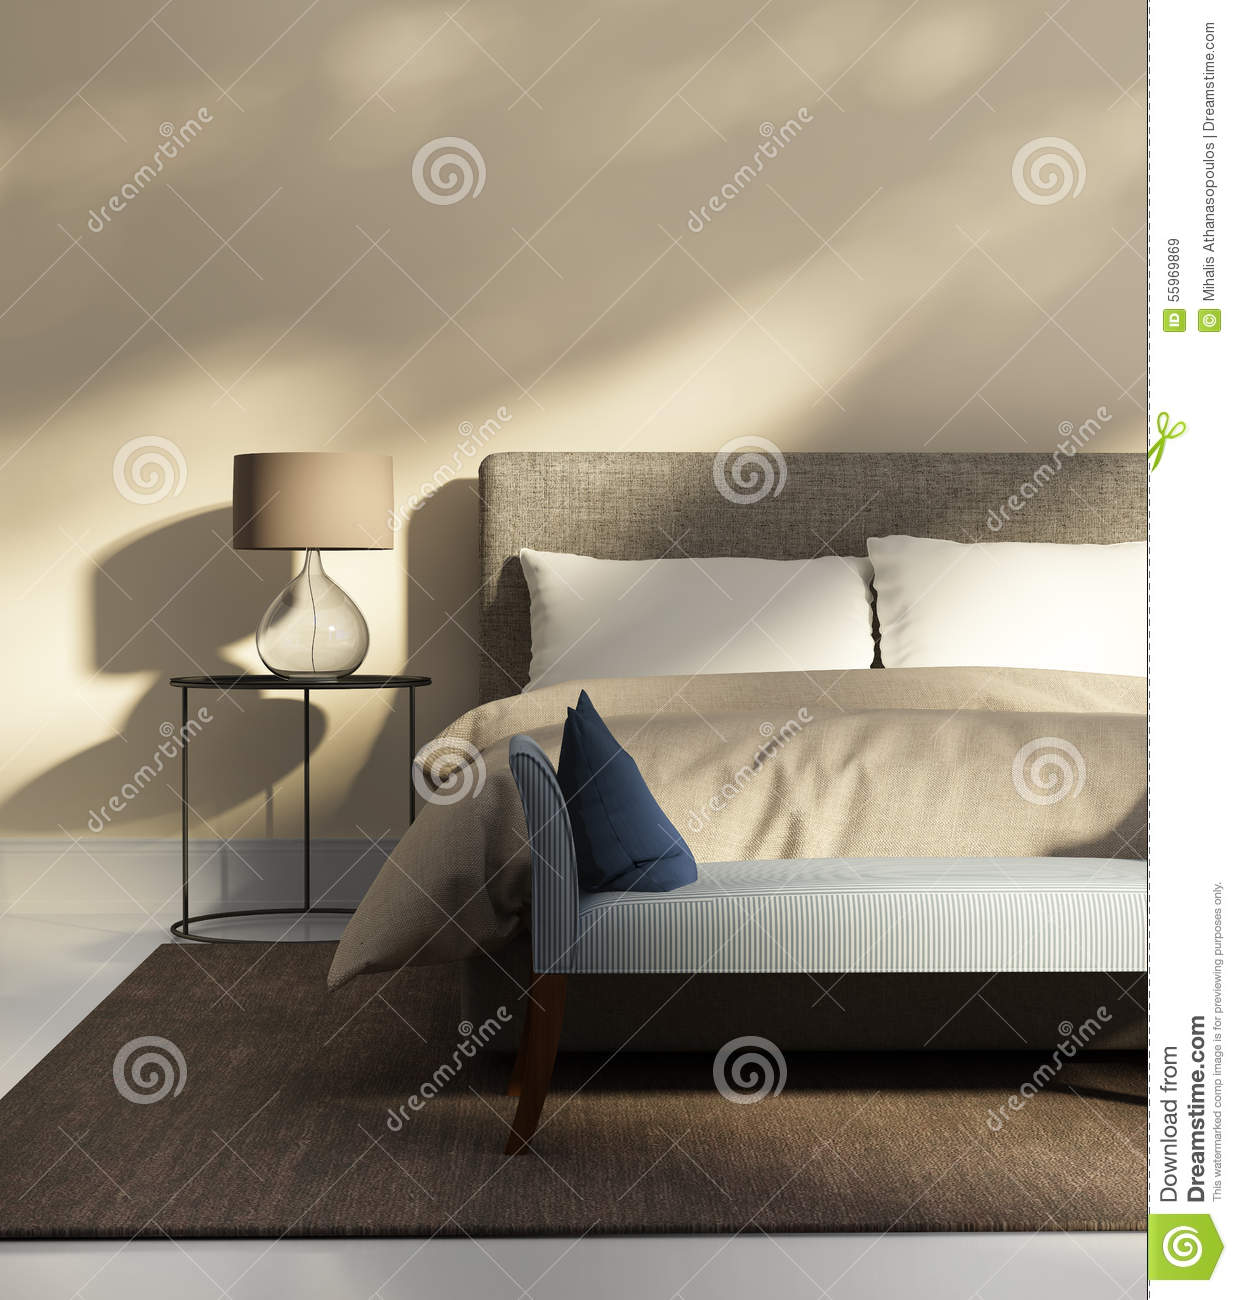 chambre coucher beige avec un banc photo stock image 55969869. Black Bedroom Furniture Sets. Home Design Ideas